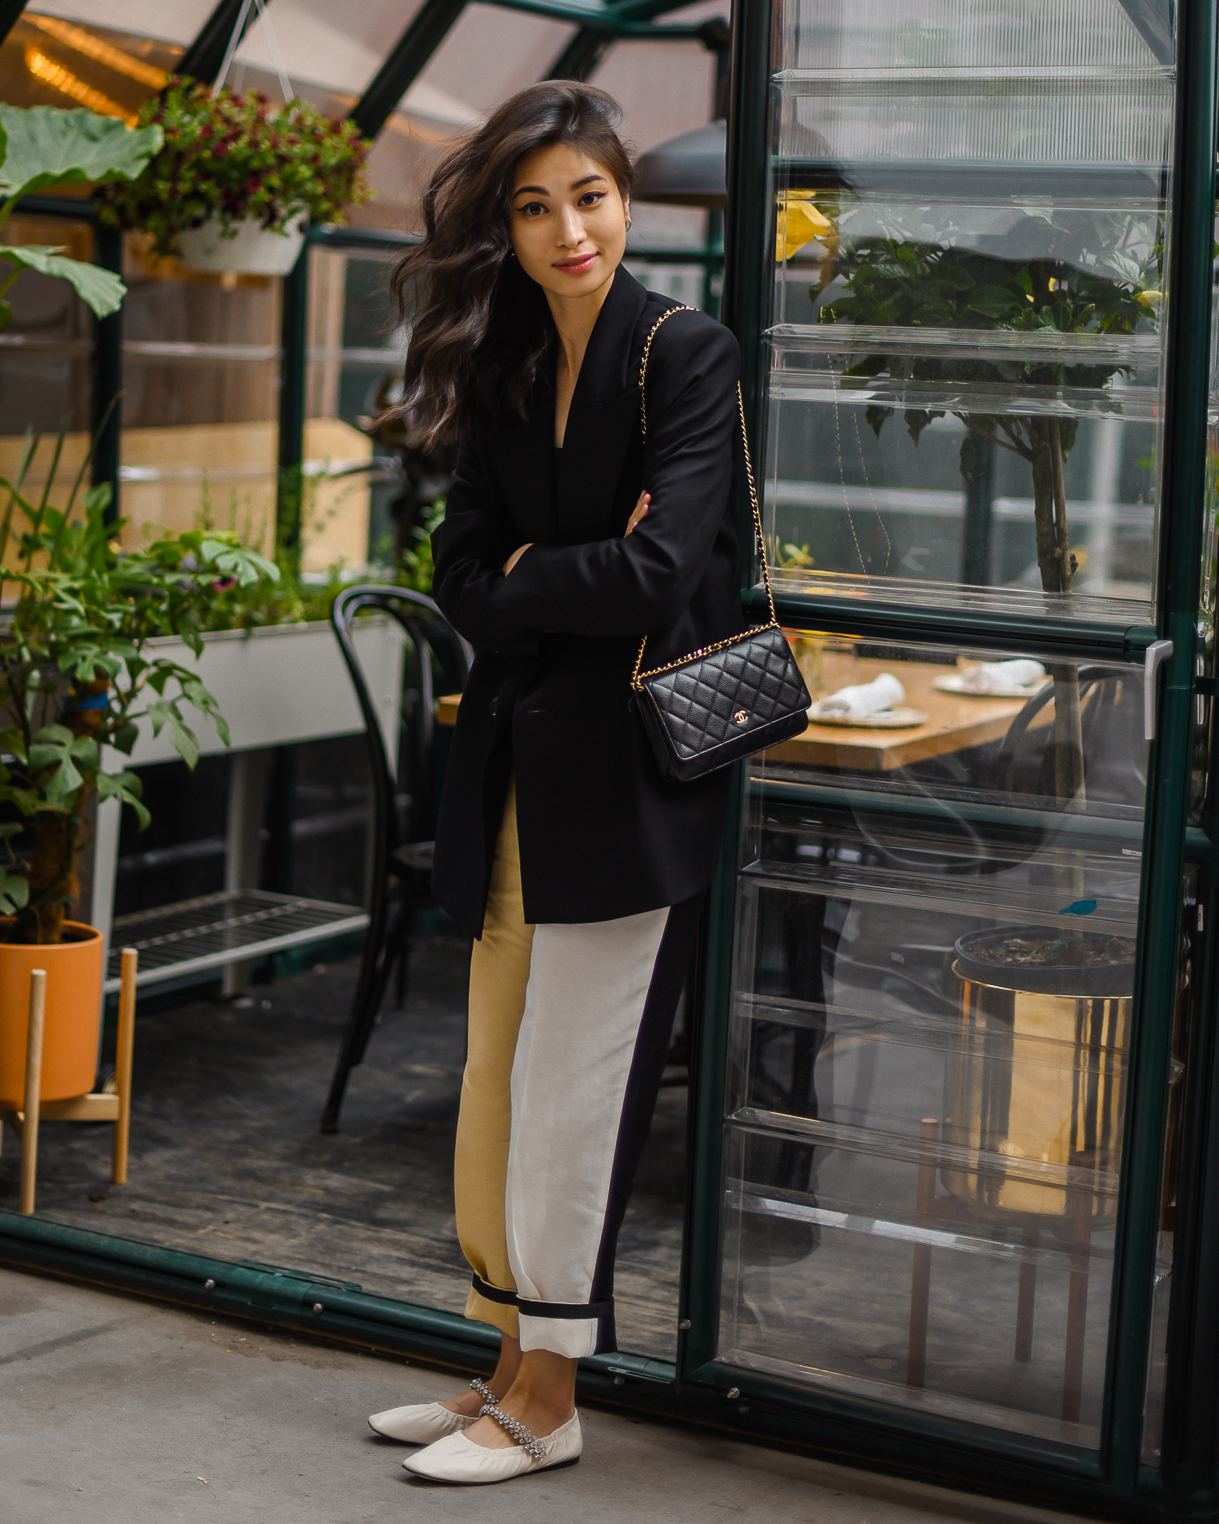 Spring color-block outfit ideas, crystal-embellished ballet flat, Jimmy Choo Gai Flats, simple spring outfit ideas, black and beige trousers, New York street style - FOREVERVANNY.com